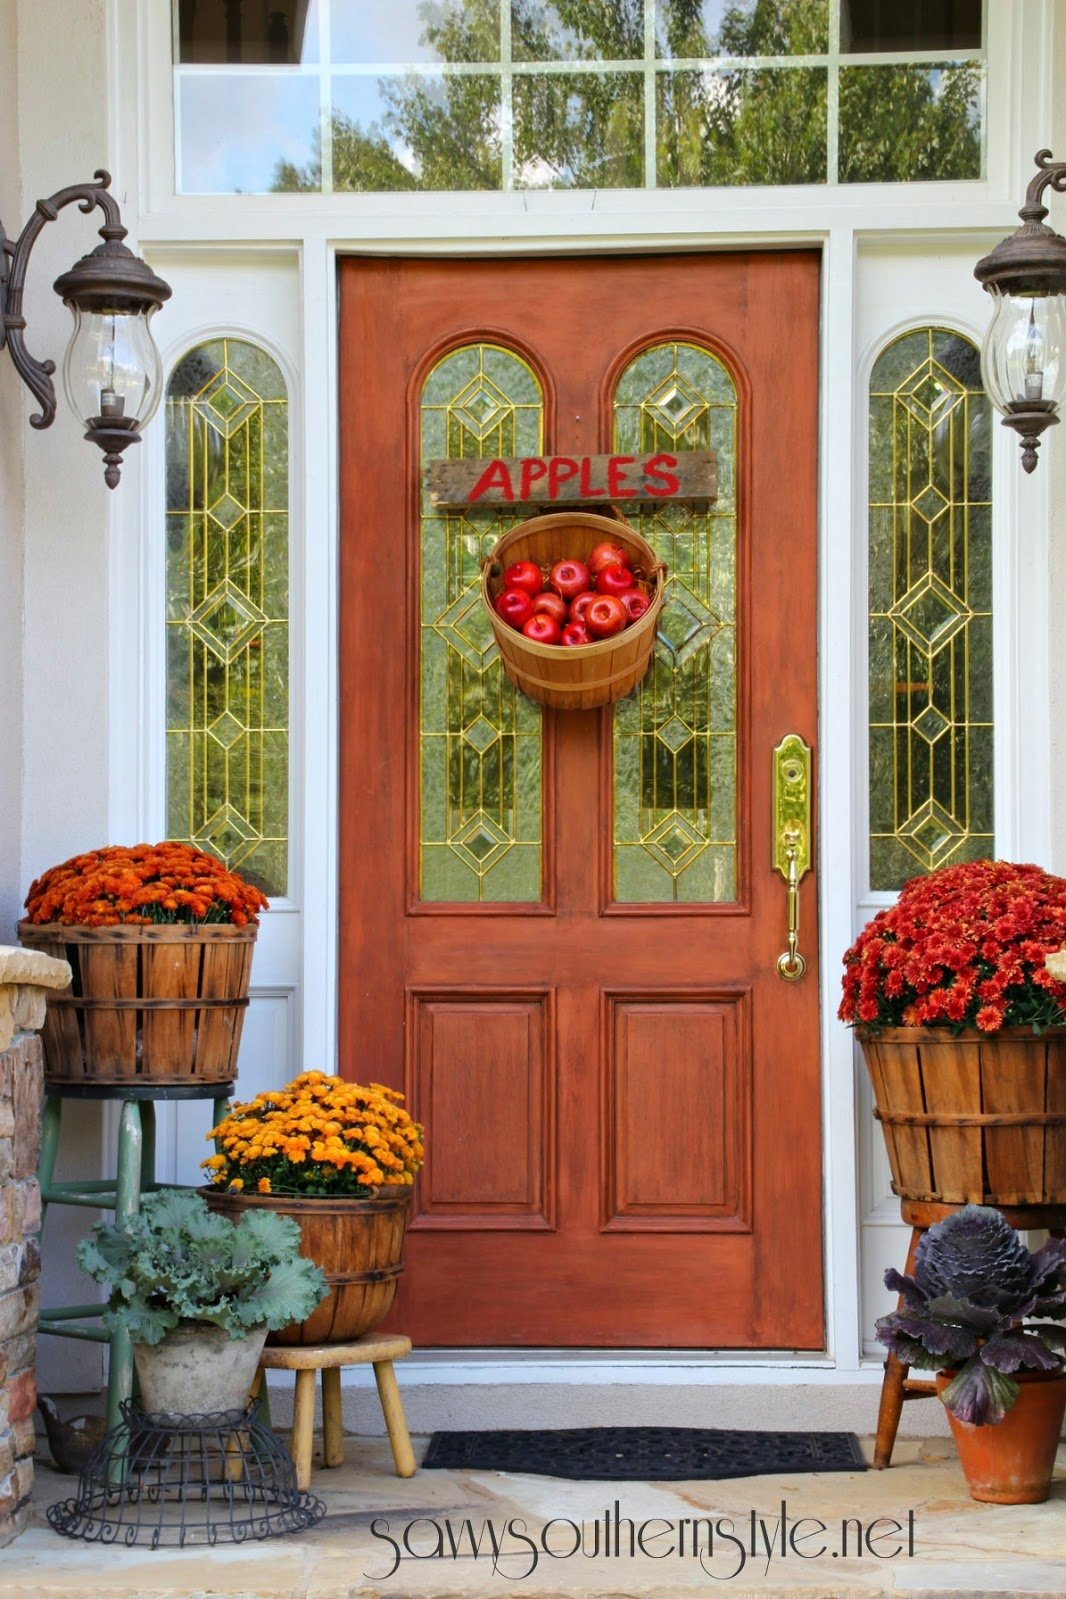 10 Famous Southern Living Fall Decorating Ideas outdoor fall decorating ideas for everyone yodersmart home 2020